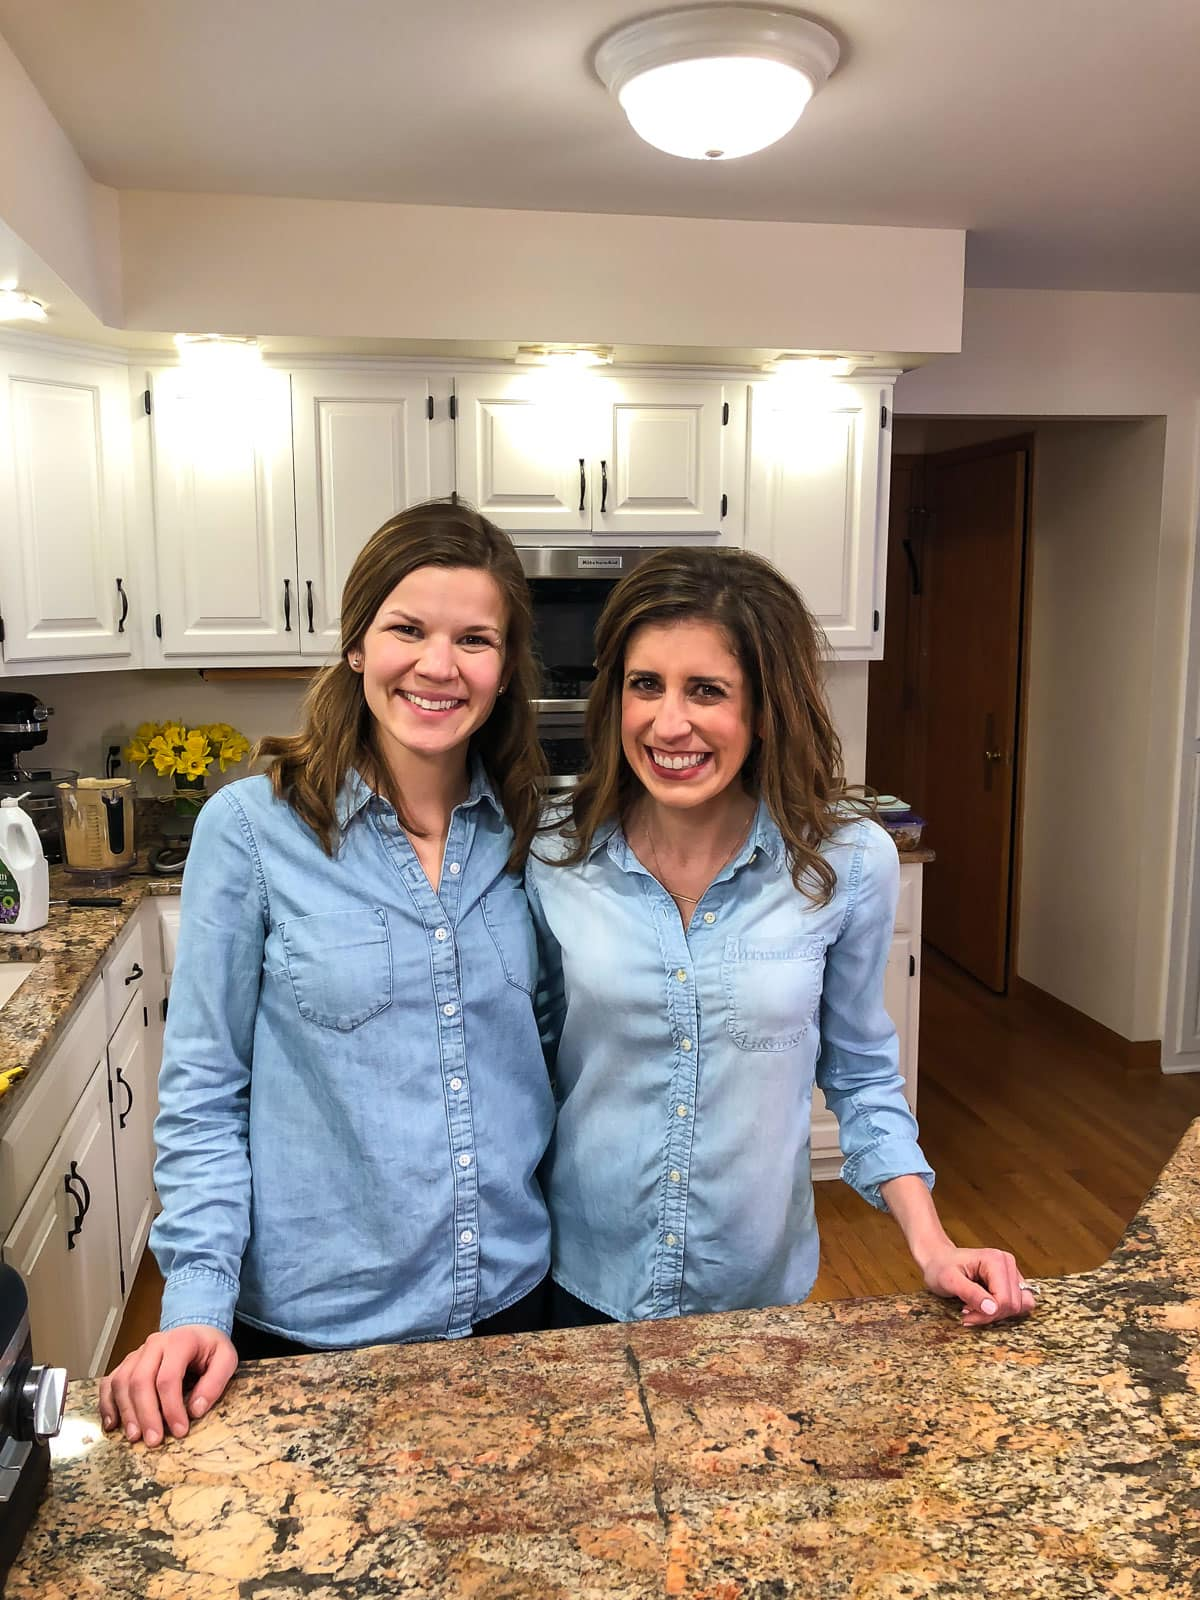 Two girls in chambray shirts standing in a white kitchen